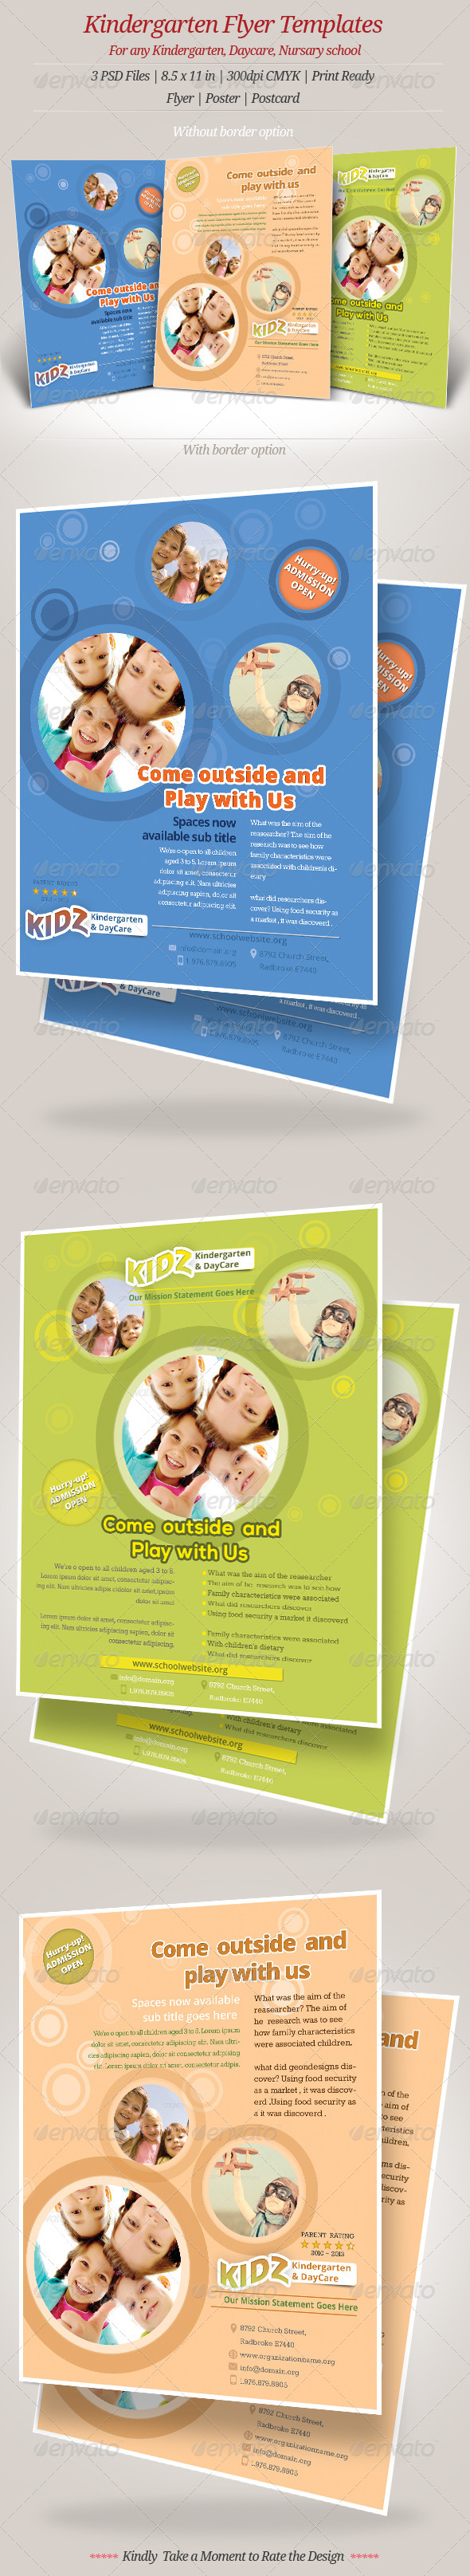 Kindergarten Daycare Flyer Templates - Events Flyers